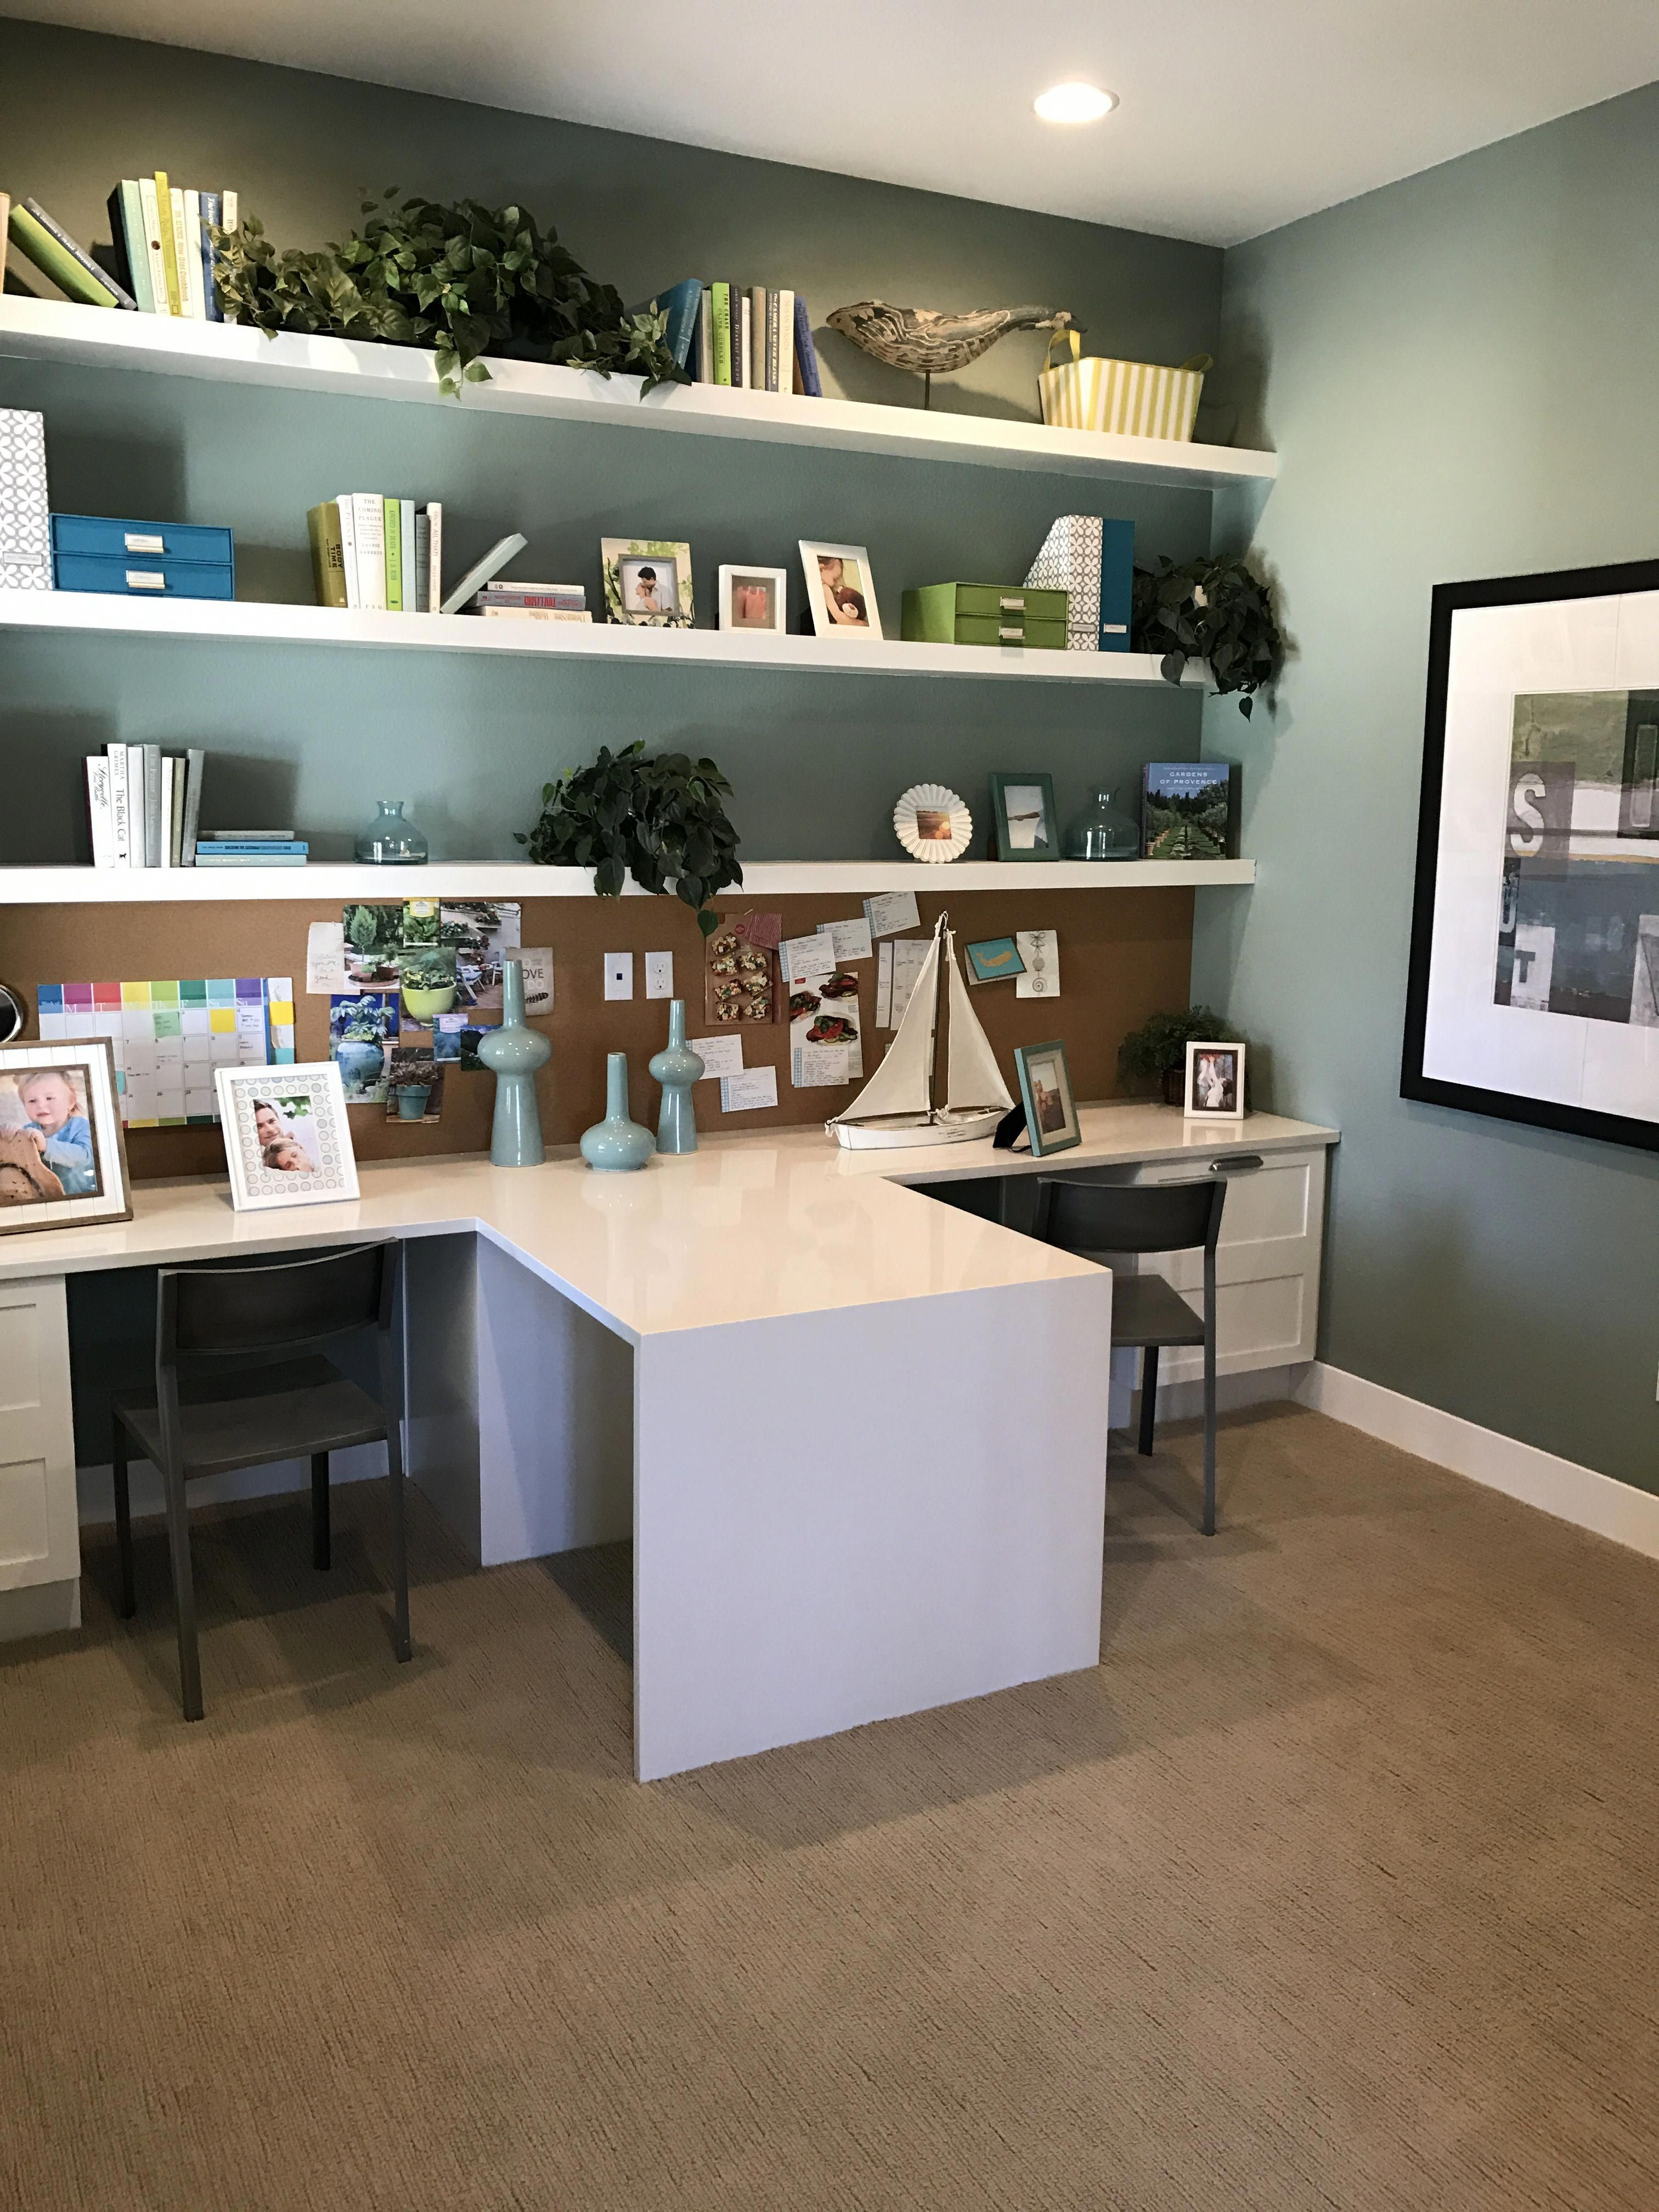 Best home office setup paint ideas wrought iron decor for renovation in design room also rh pinterest